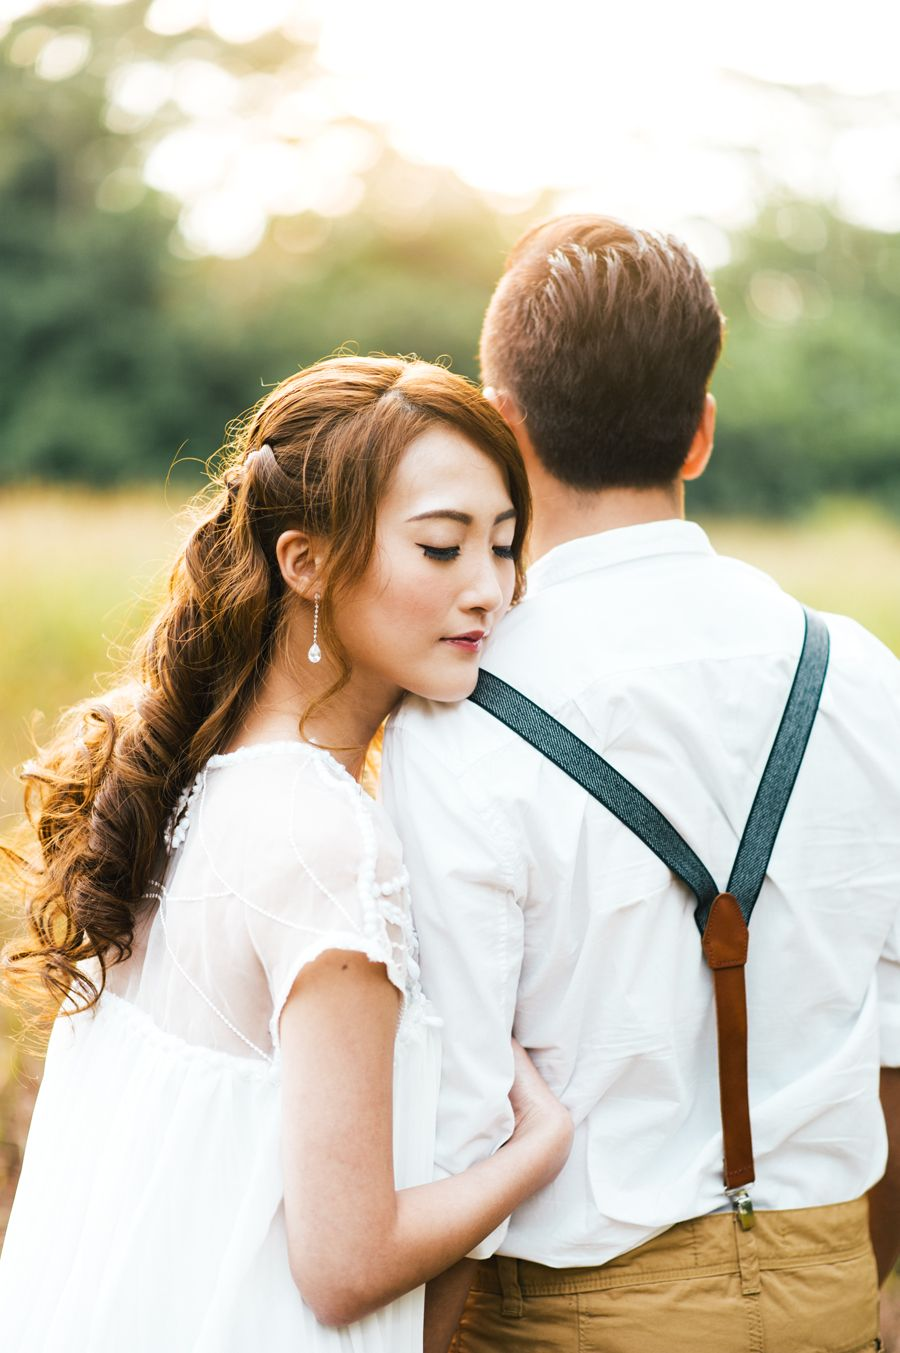 17 Couple Poses You Should Try For A Natural Prewedding Photoshoot Couples Photoshoot Couple Posing Couple Photoshoot Poses